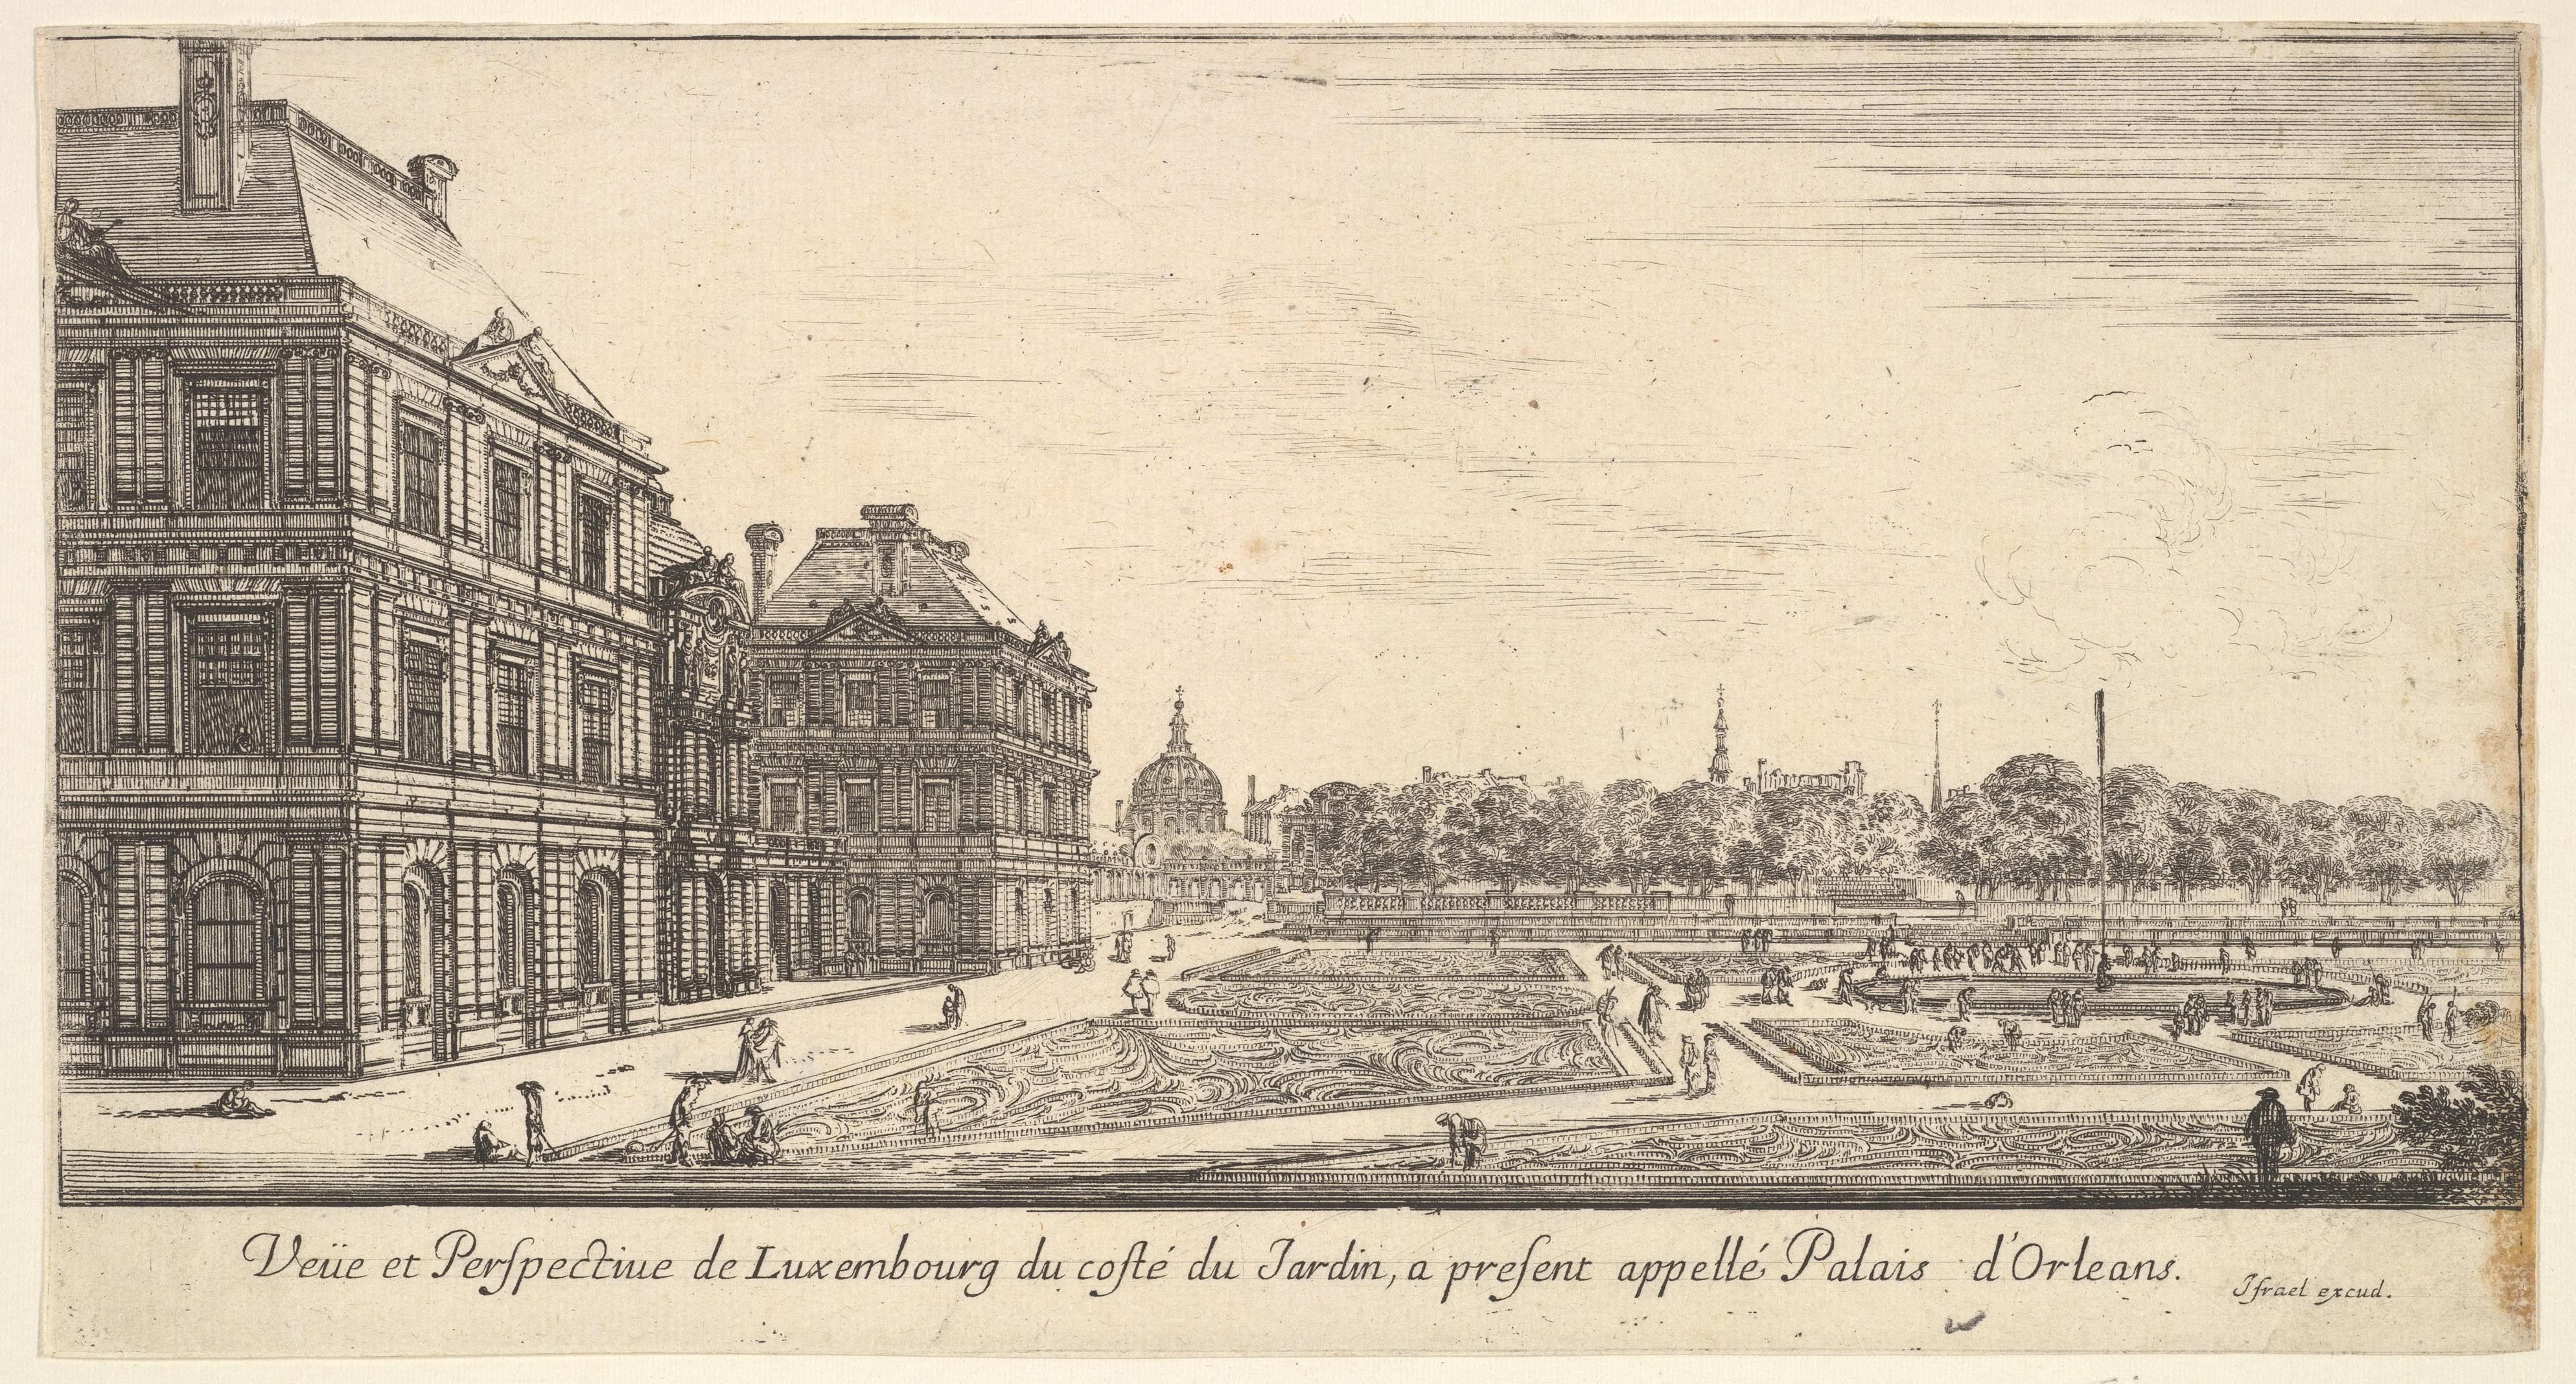 The Luxembourg Palace and gardens. They were built by Marie de' Medici to recall her native Florence.